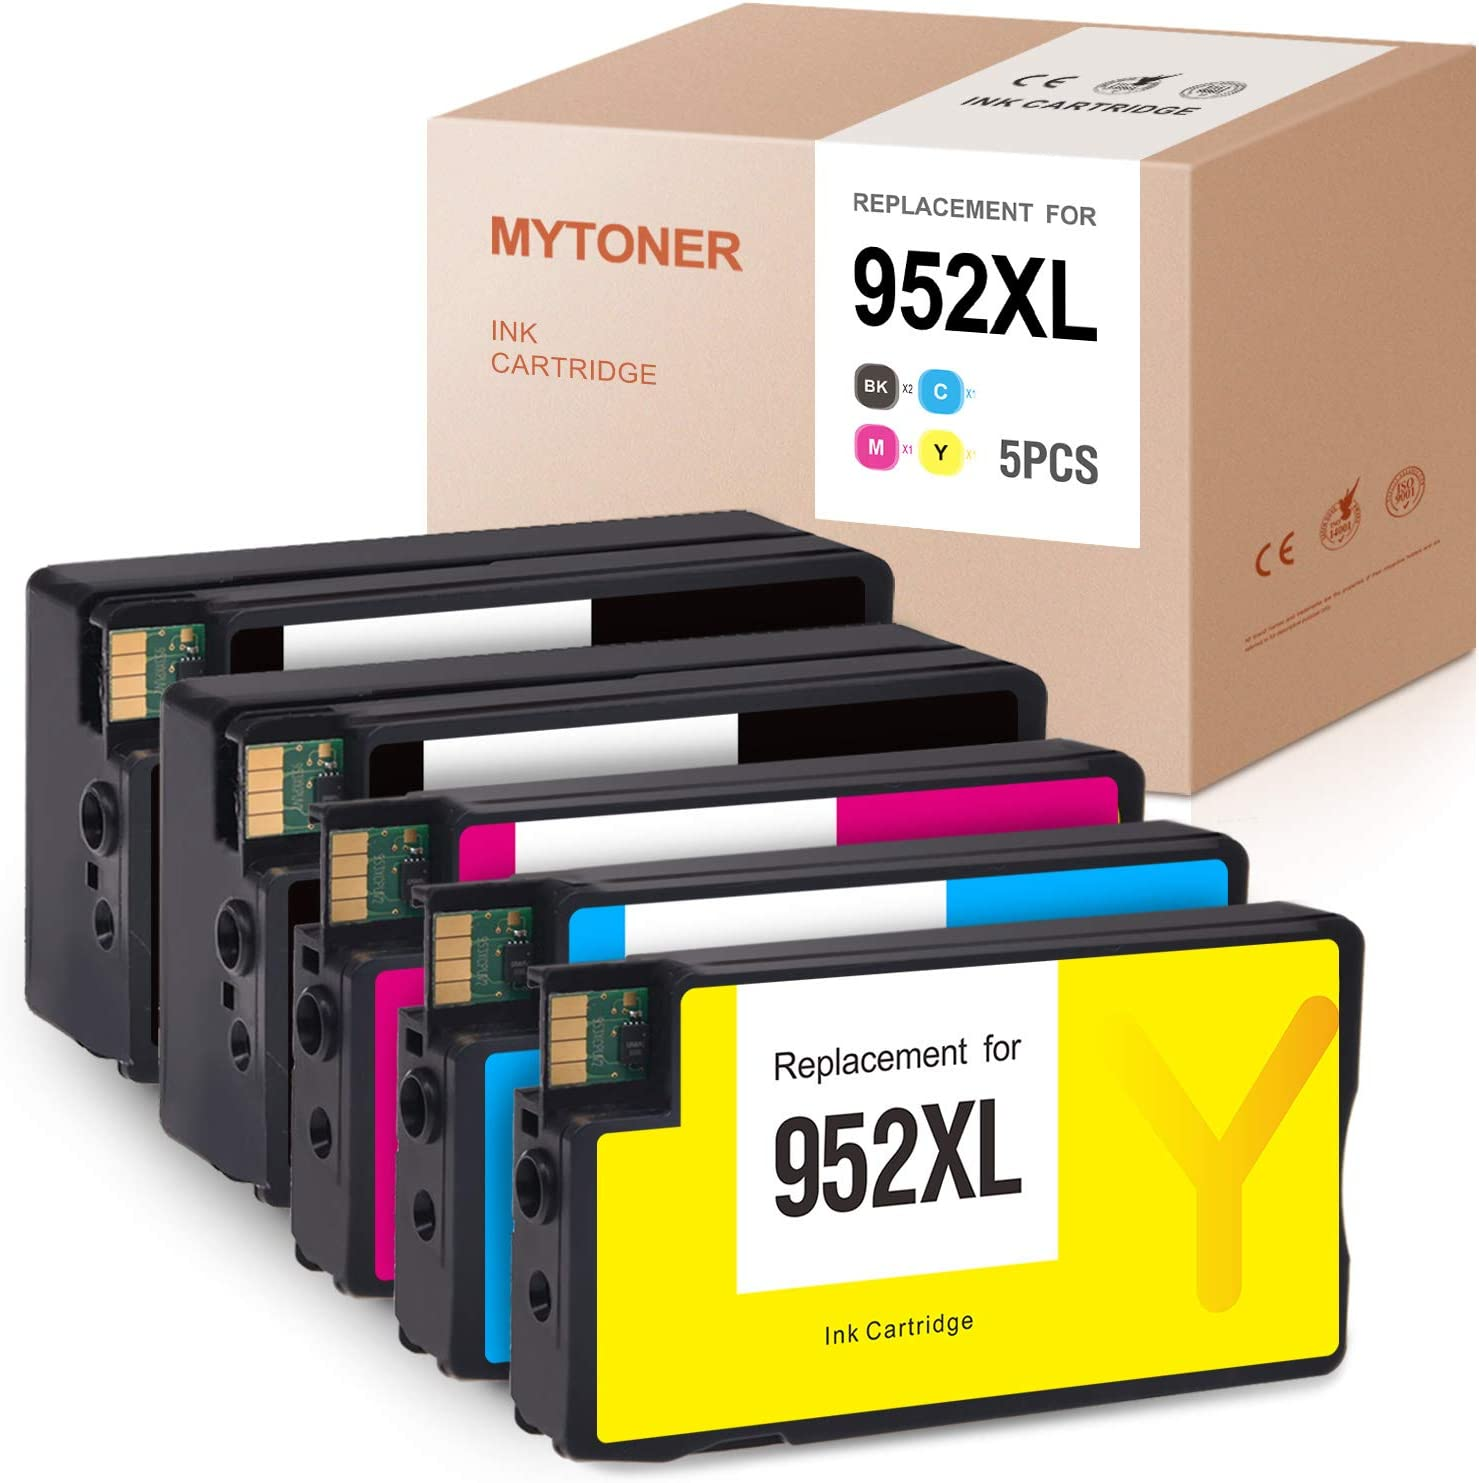 MYTONER Remanufactured Ink Cartridge Replacement for HP 952XL 952 XL Ink Cartridges Combo Pack 2006B/2007A Version(Black Cyan Magenta Yellow, 5-Pack)